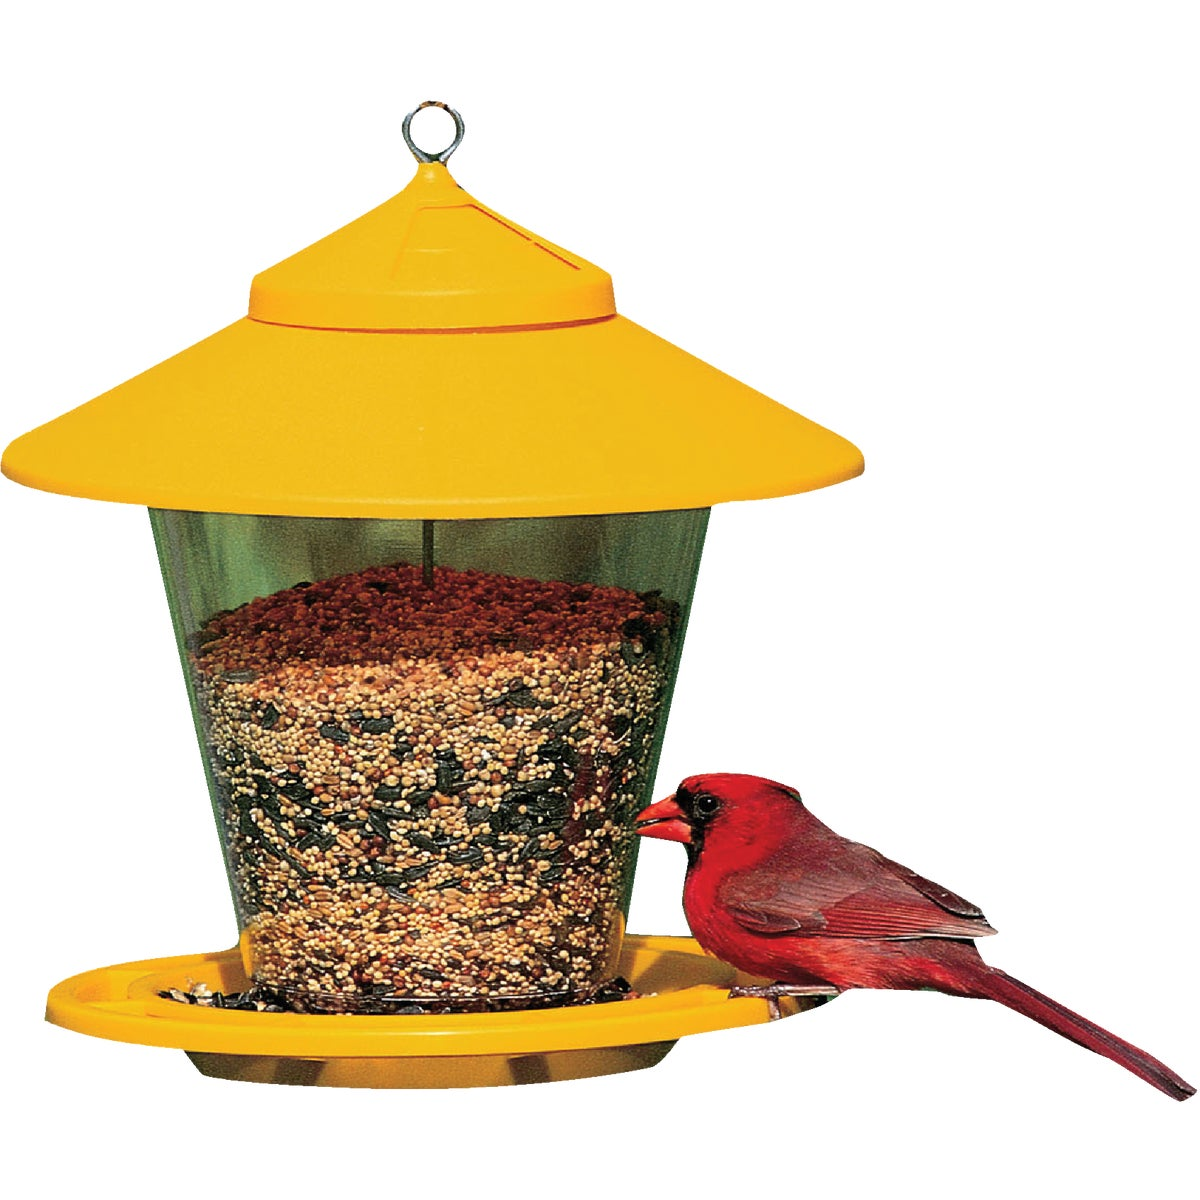 GRANARY BIRD FEEDER - 6231 by Kay Home Products